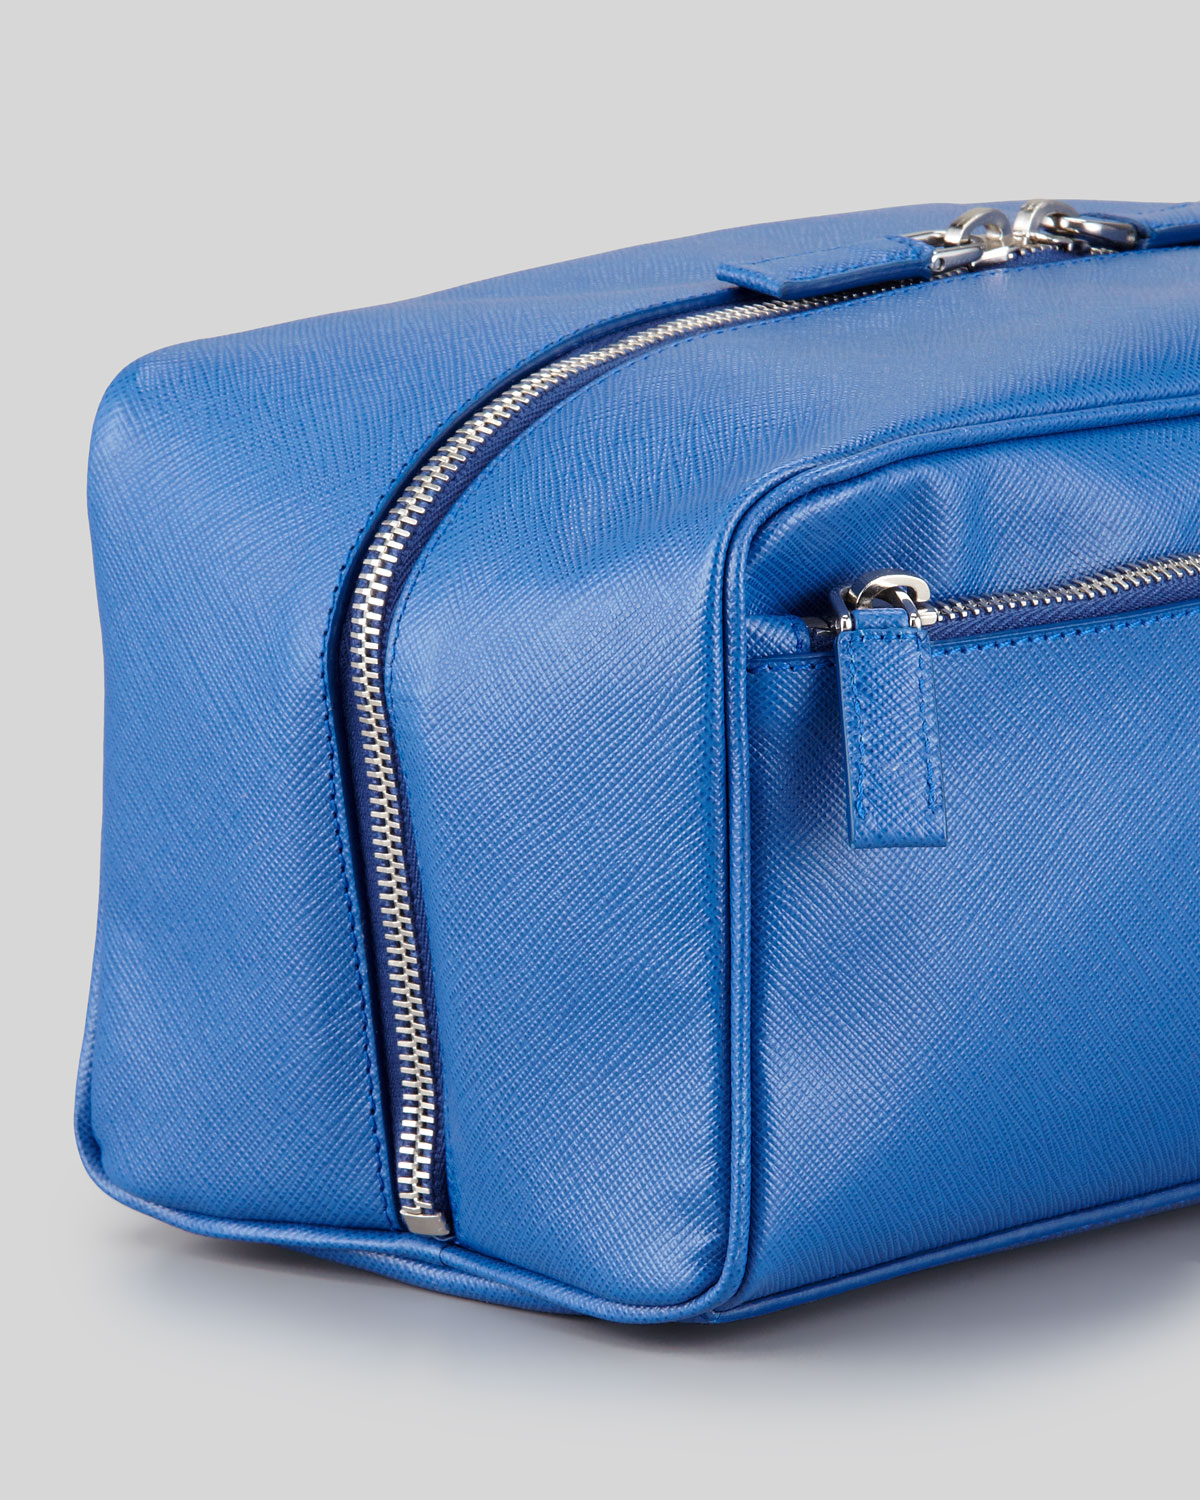 55d5c5076ae2 ... store lyst prada saffiano travel toiletry bag in blue for men 750b9  05e16